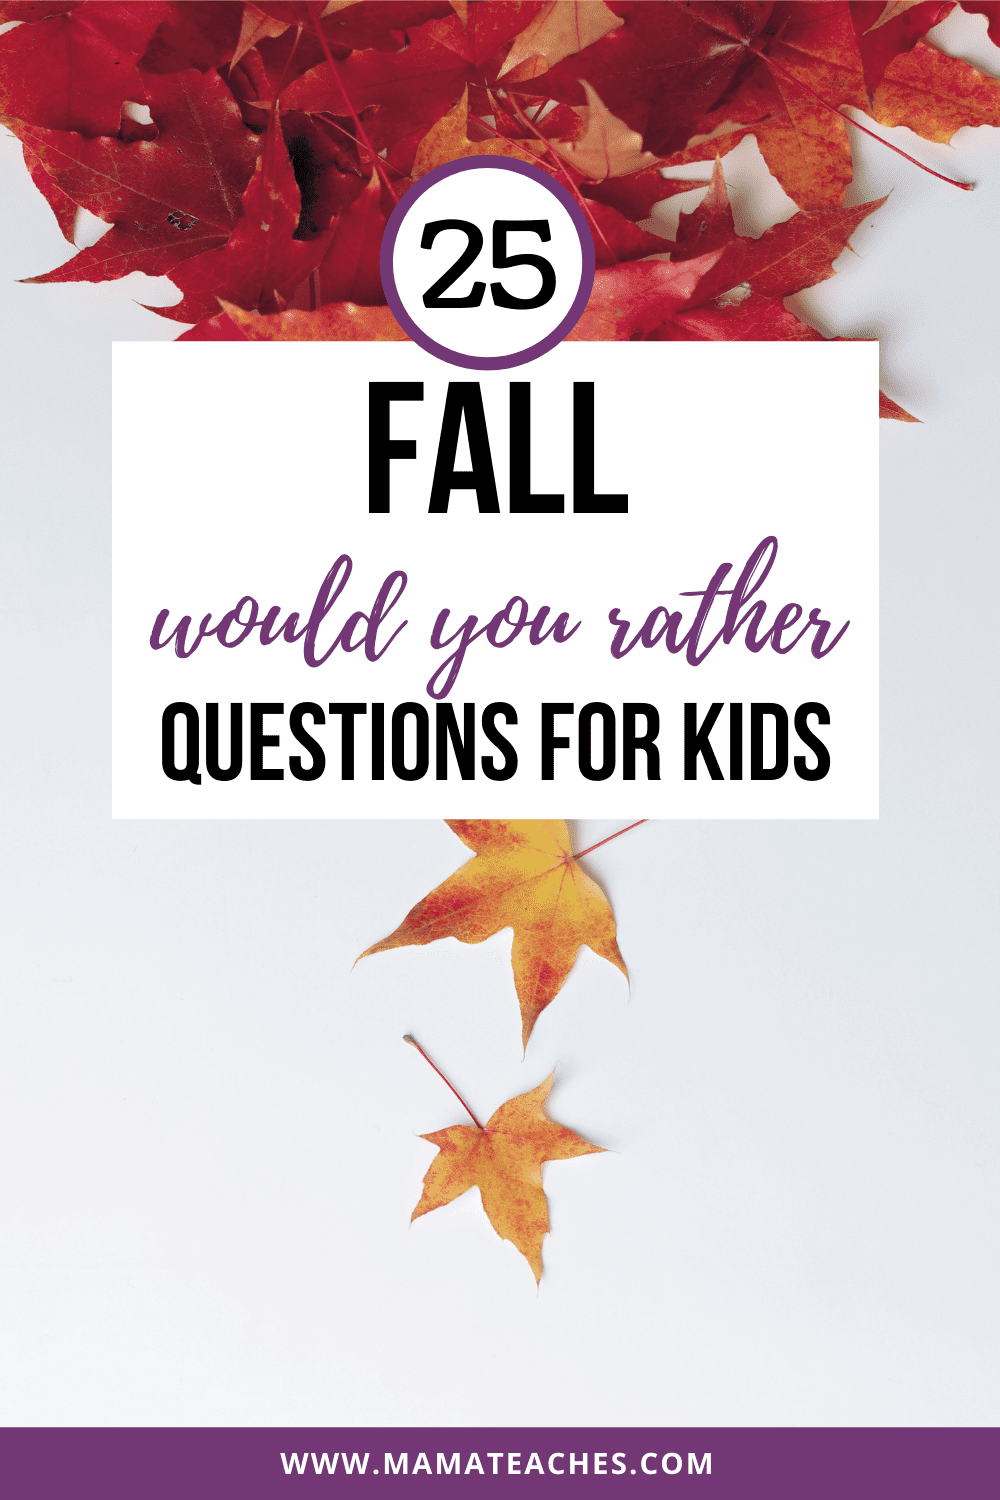 25 Fall Would You Rather Questions for Kids